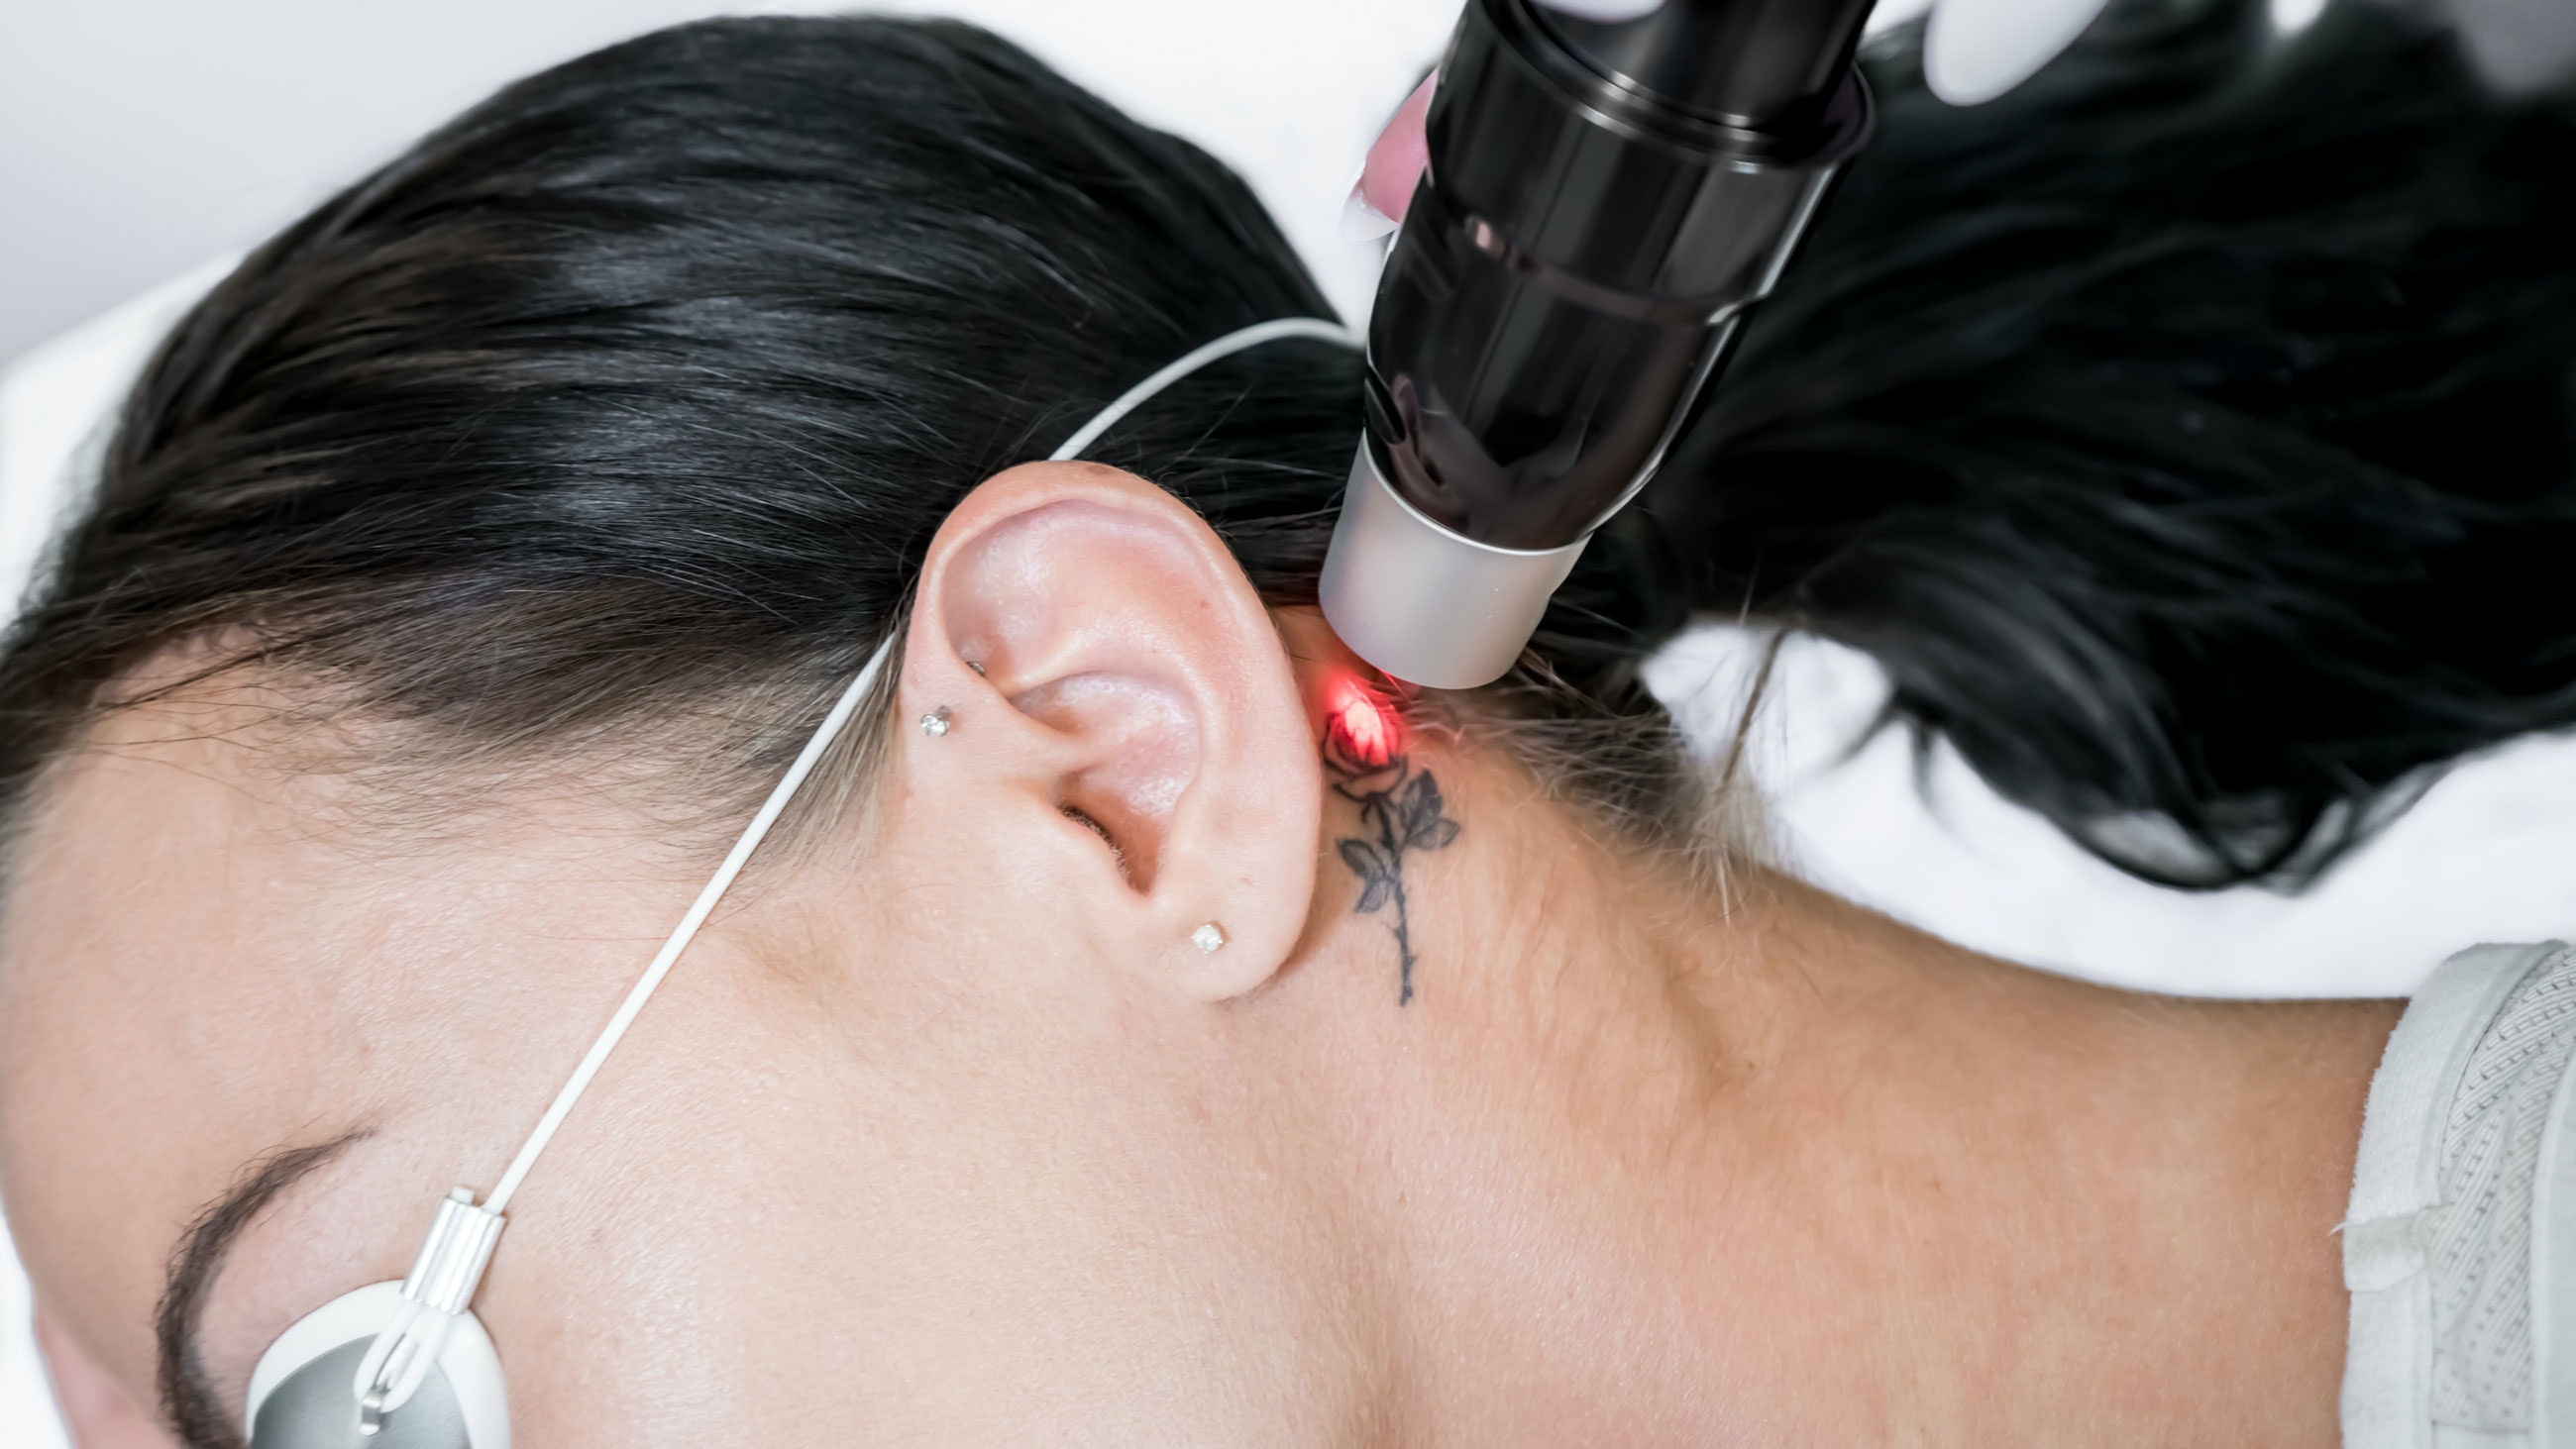 Laser tattoo removal treatment session on patient, using picosecond technology, to break down tattoo ink into smaller particles. At a beauty and skincare clinic for aesthetic lasers.